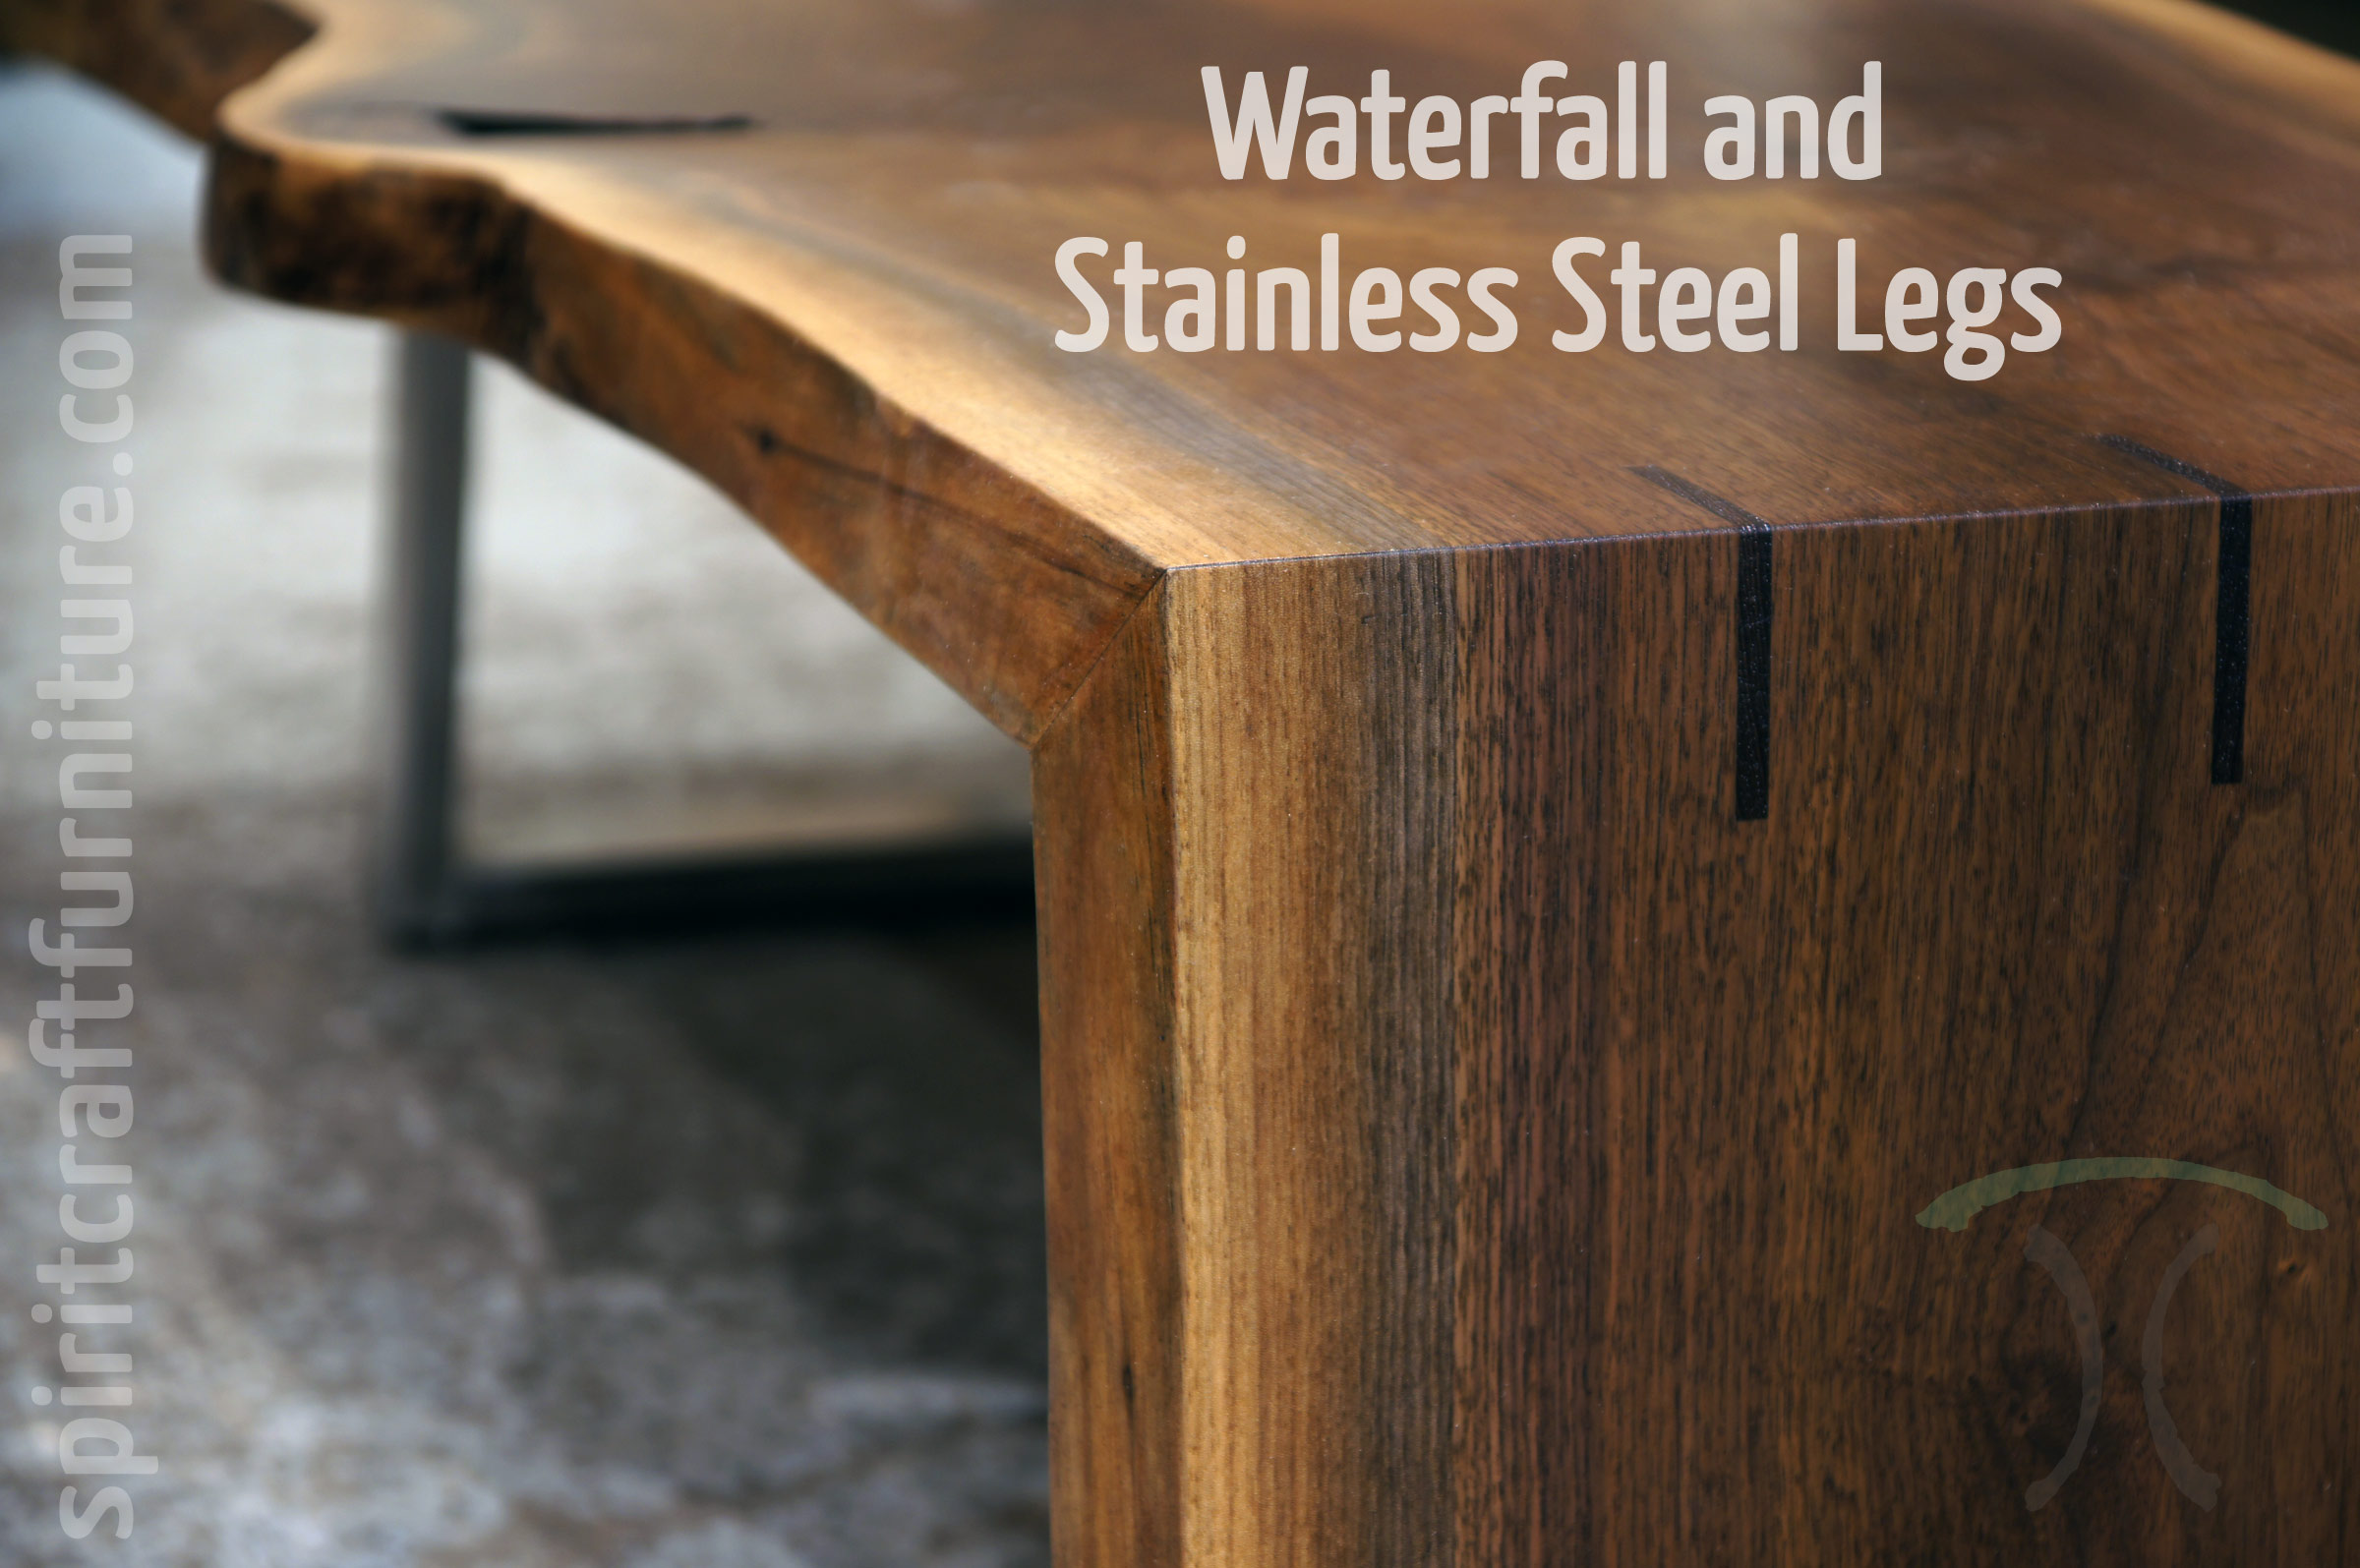 Solid Black Walnut live edge Waterfall Coffee Table with miter joint, walnut splines and one stainless steel leg.